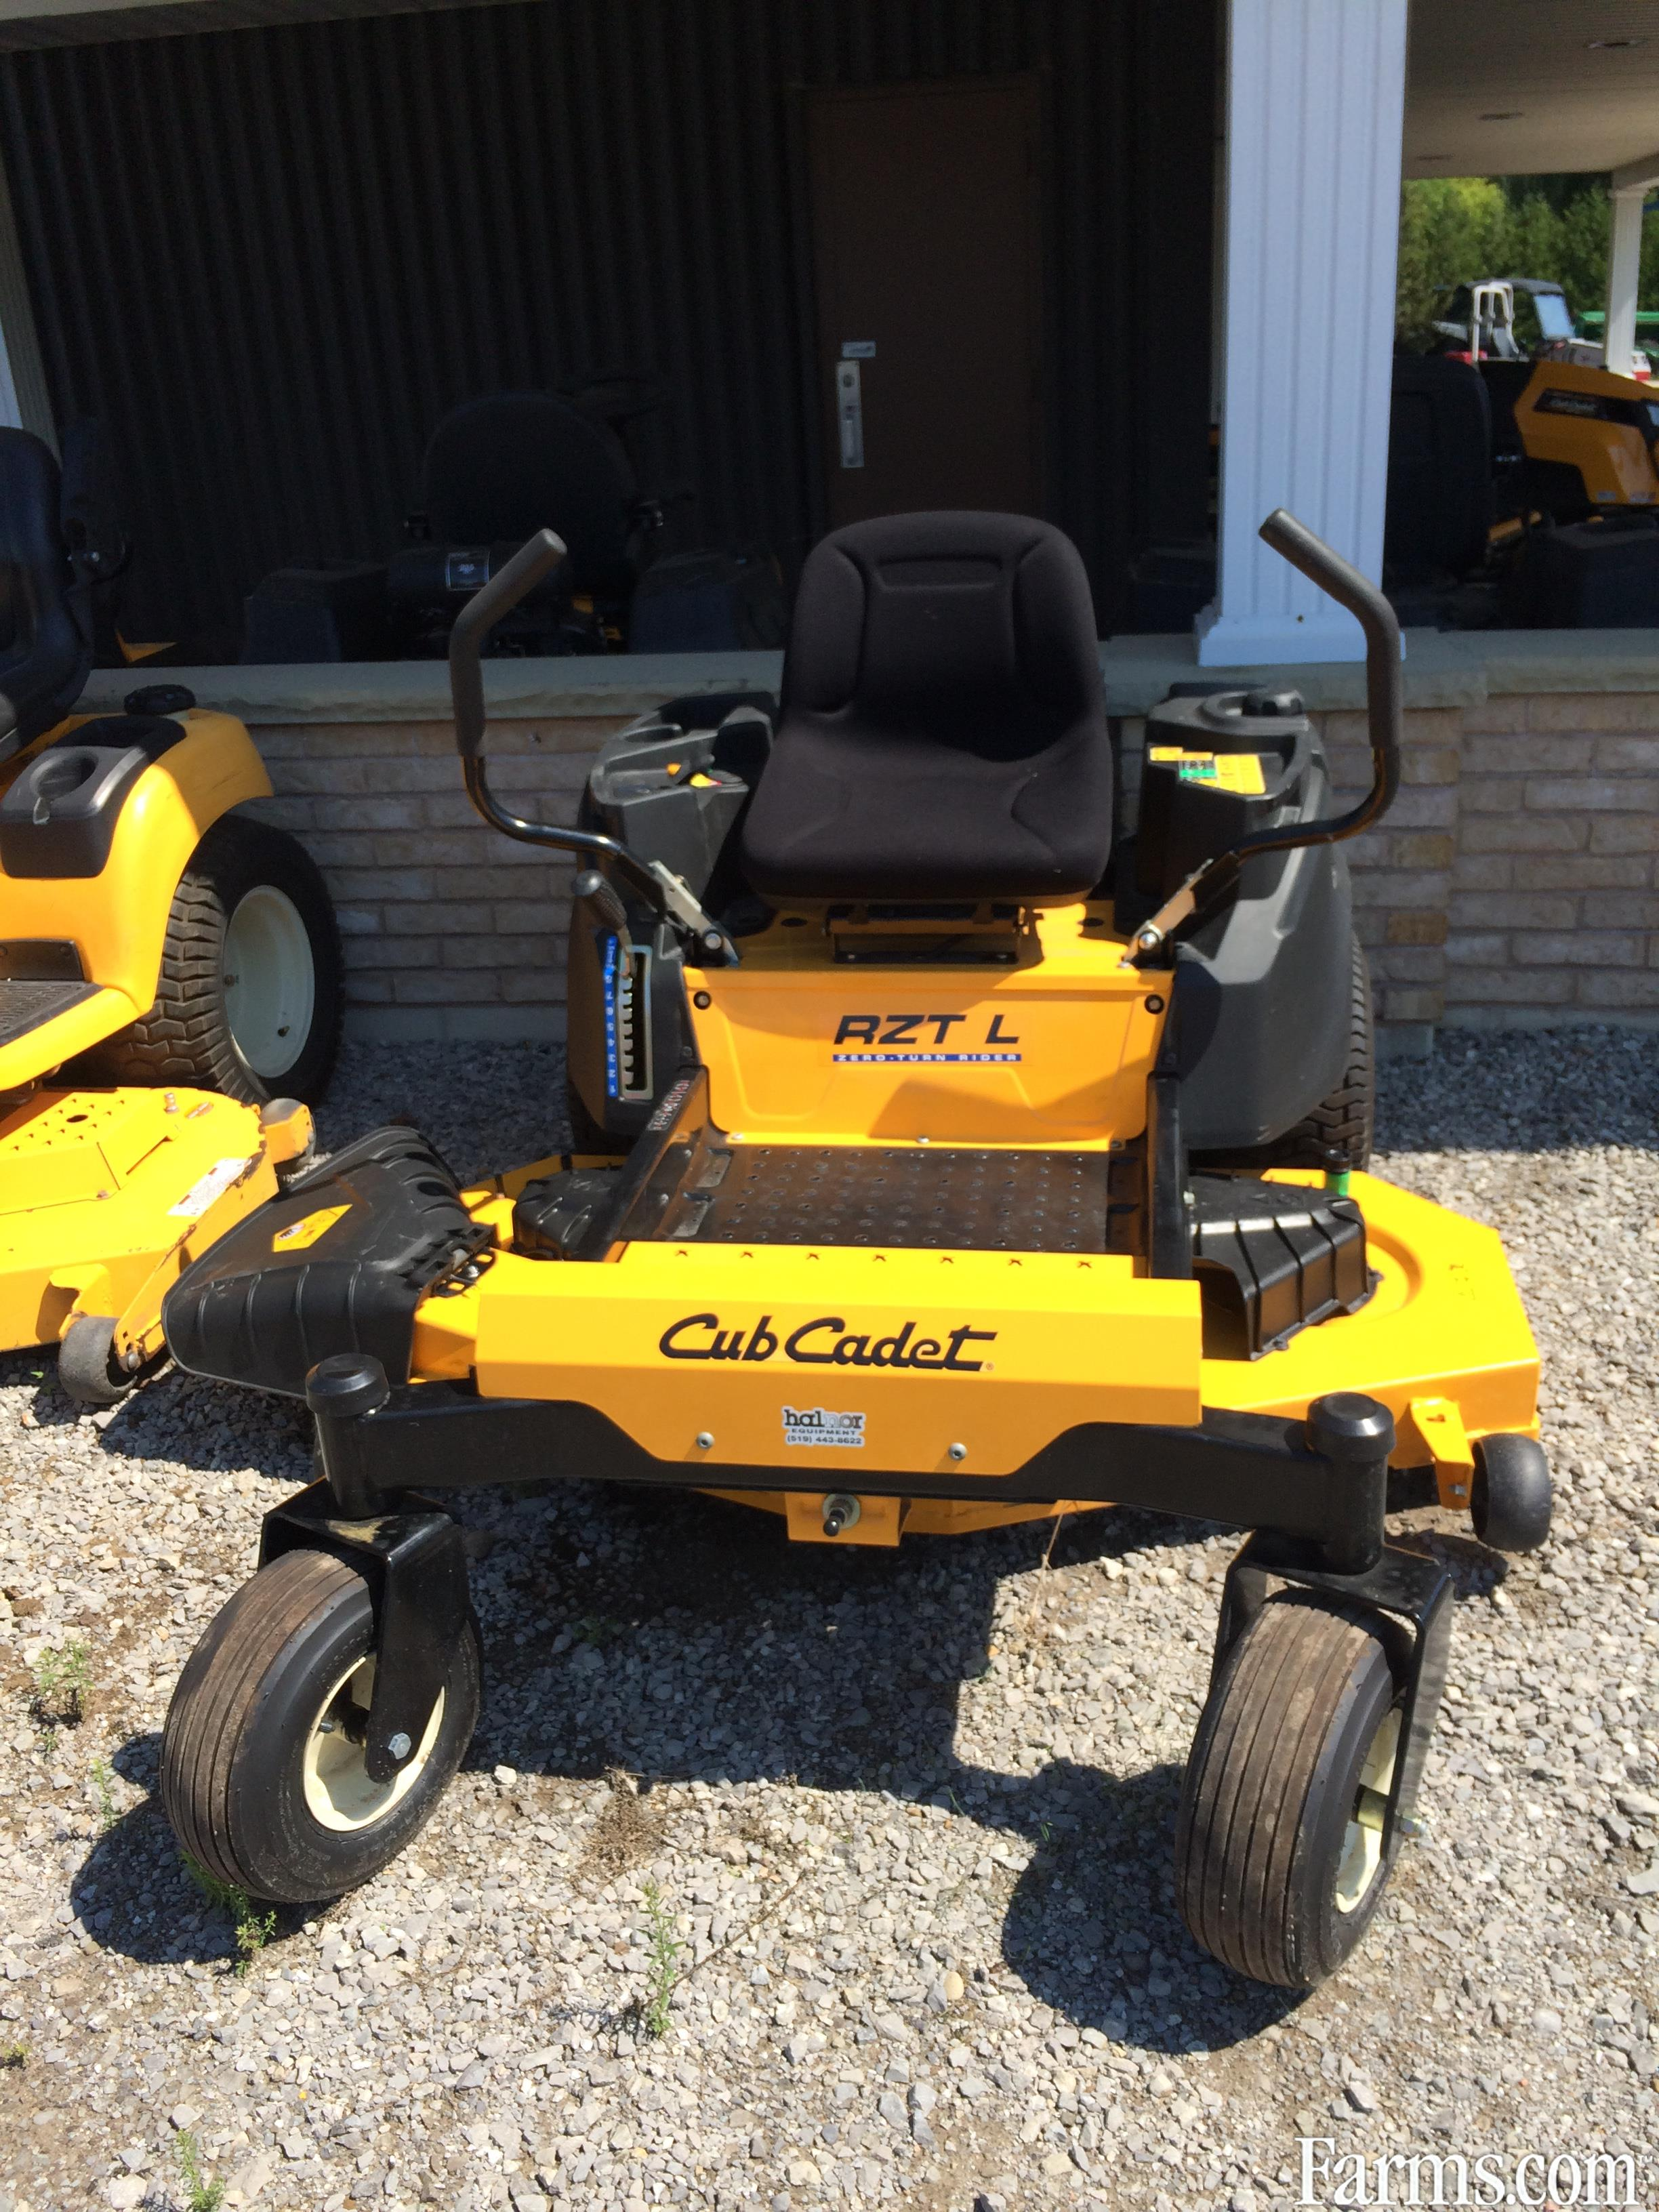 Cub Cadet Lawn Mowers Dealers : Cub cadet rztl fab mower zero turn for sale